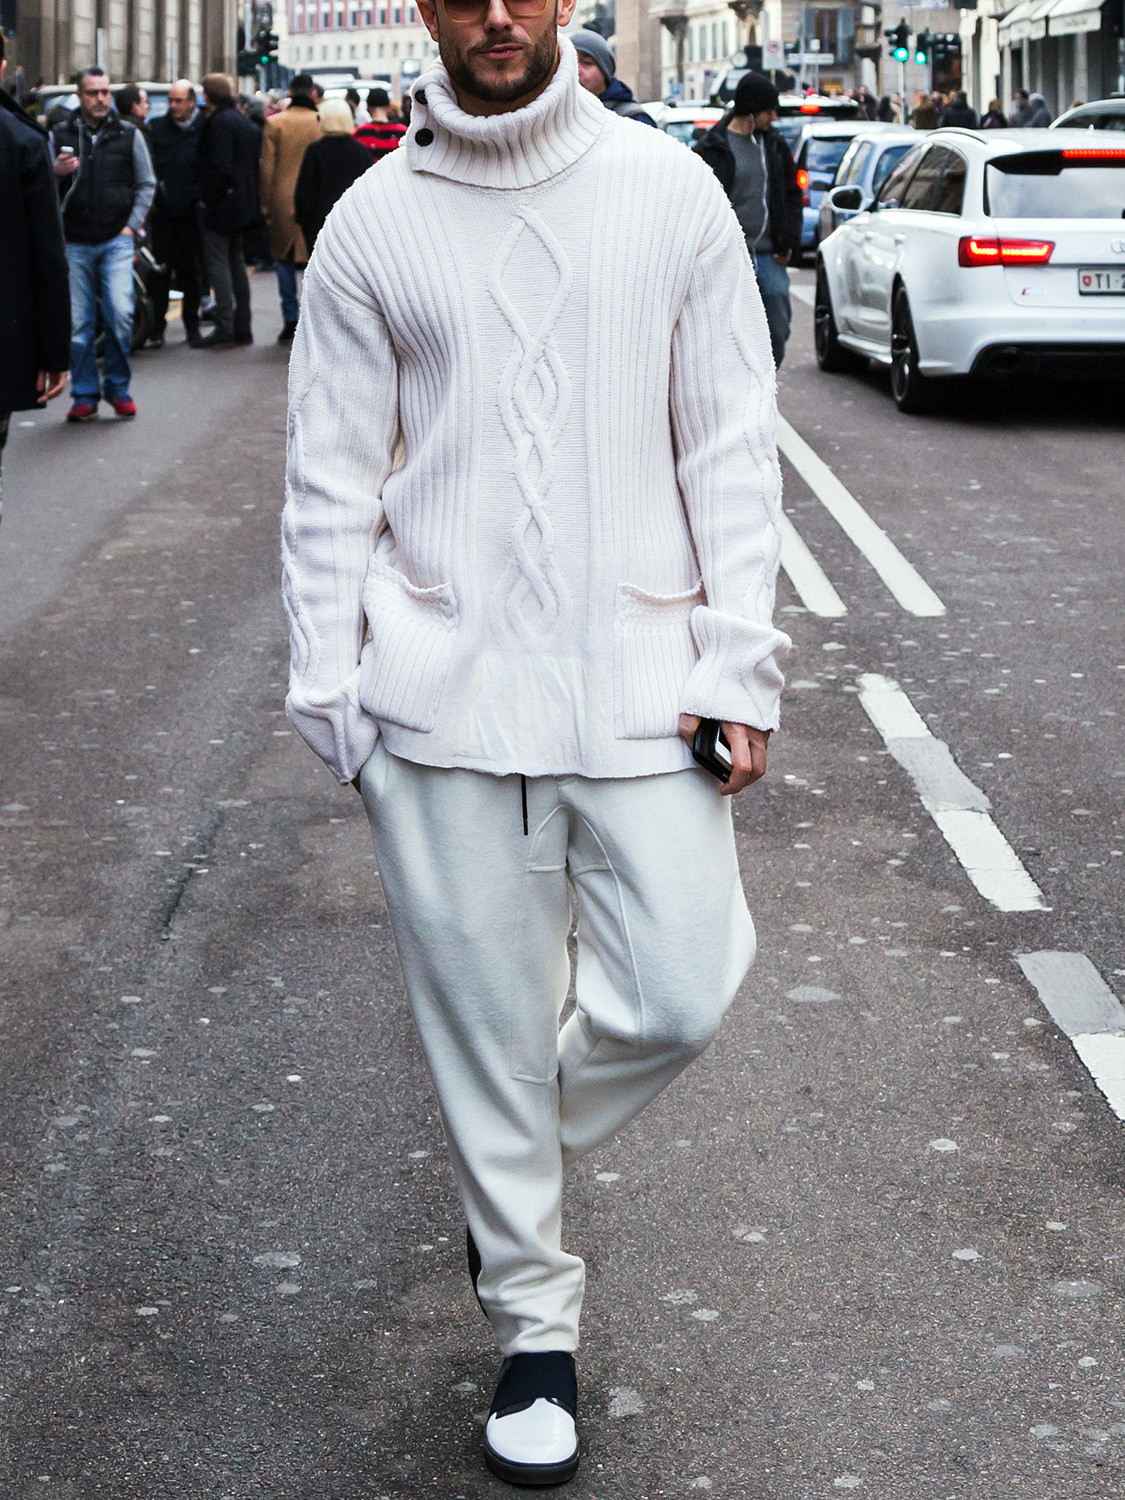 Men's outfit idea for 2021 with heavyweight rollneck sweater, neutral sweatpants, white sneakers. Suitable for fall and winter.